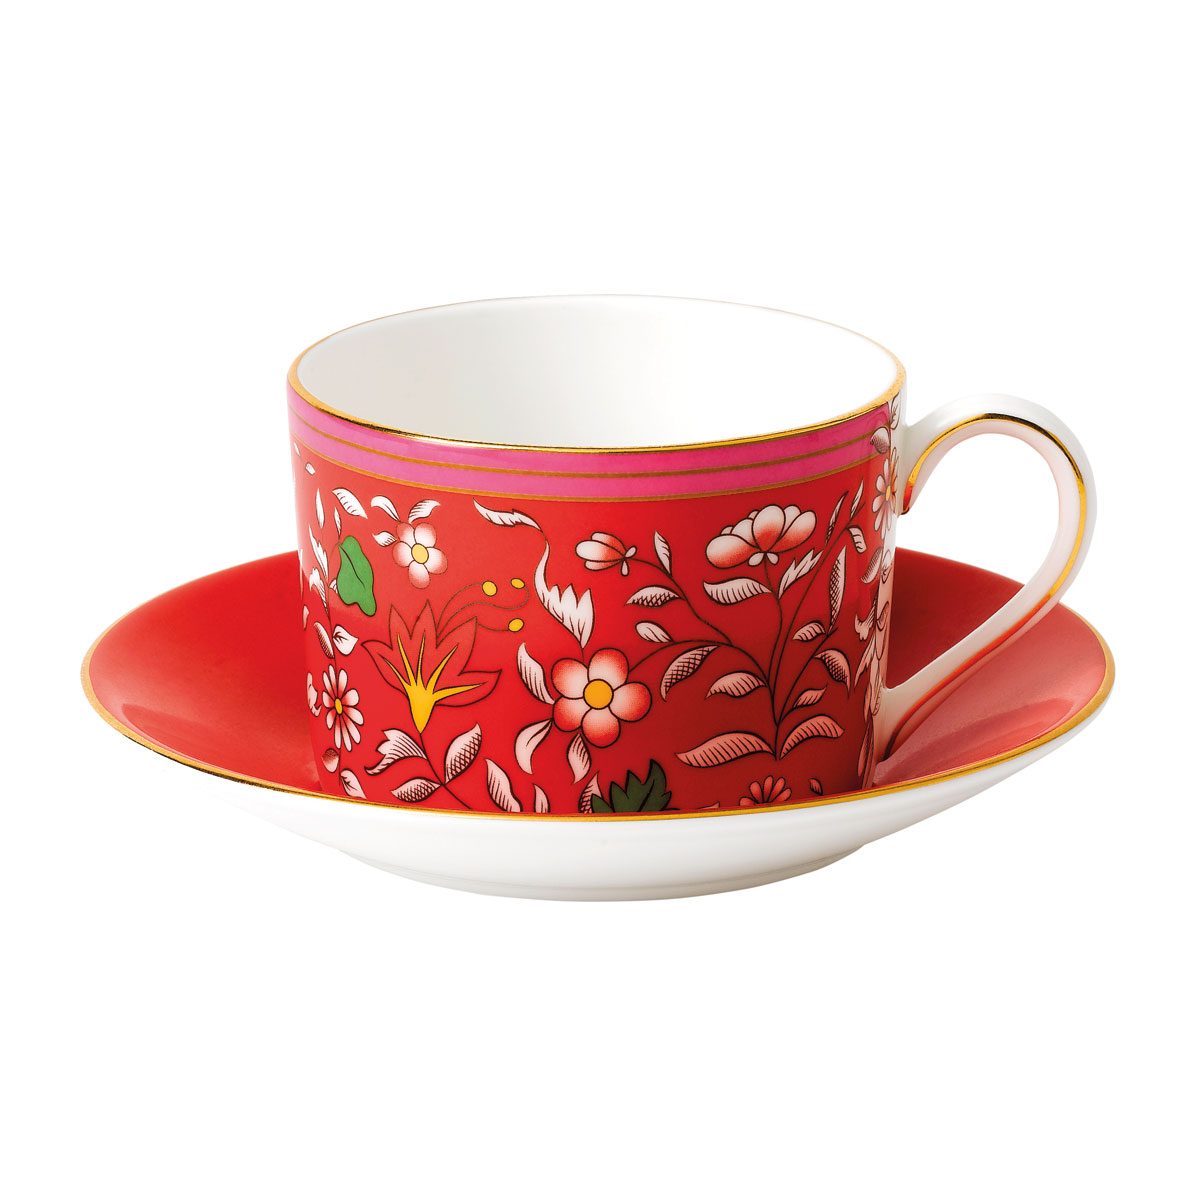 Wedgwood Wonderlust Fine Bone China Teacup and Saucer Set Crimson Jewel